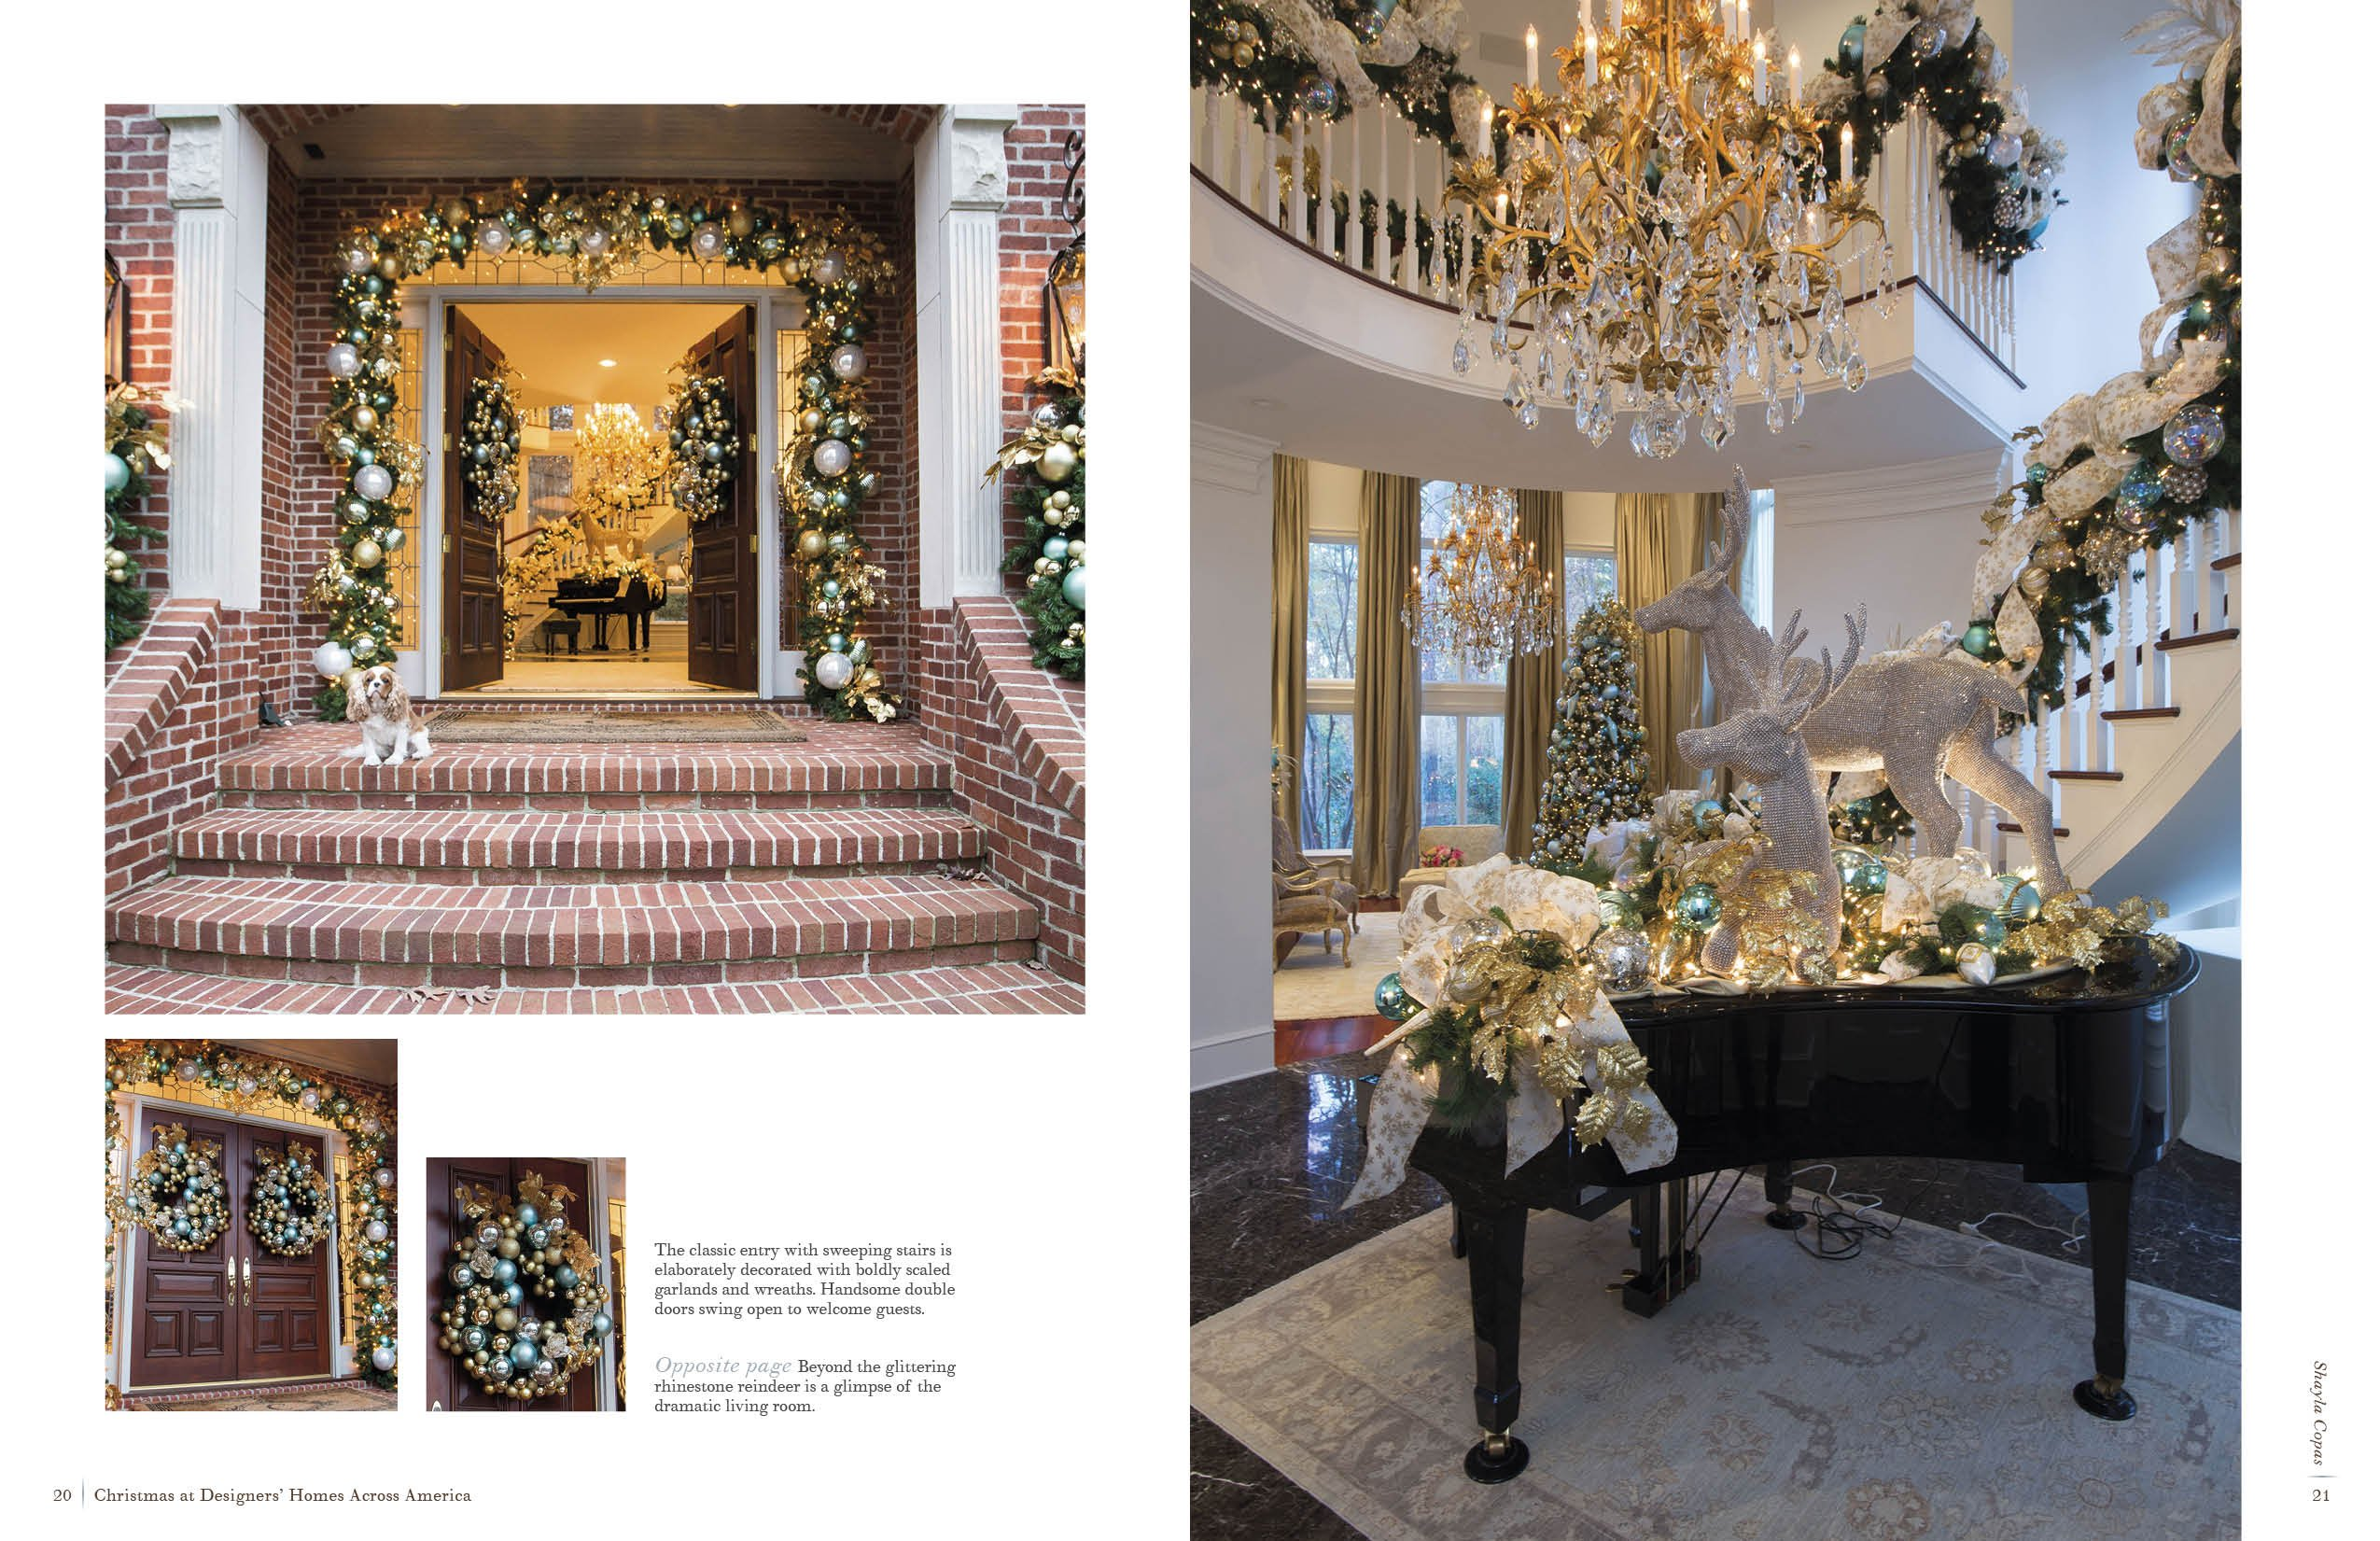 Beau Christmas At Designersu0027 Homes Across America: Katharine McMillan, Patricia  McMillan: 9780764351631: Amazon.com: Books